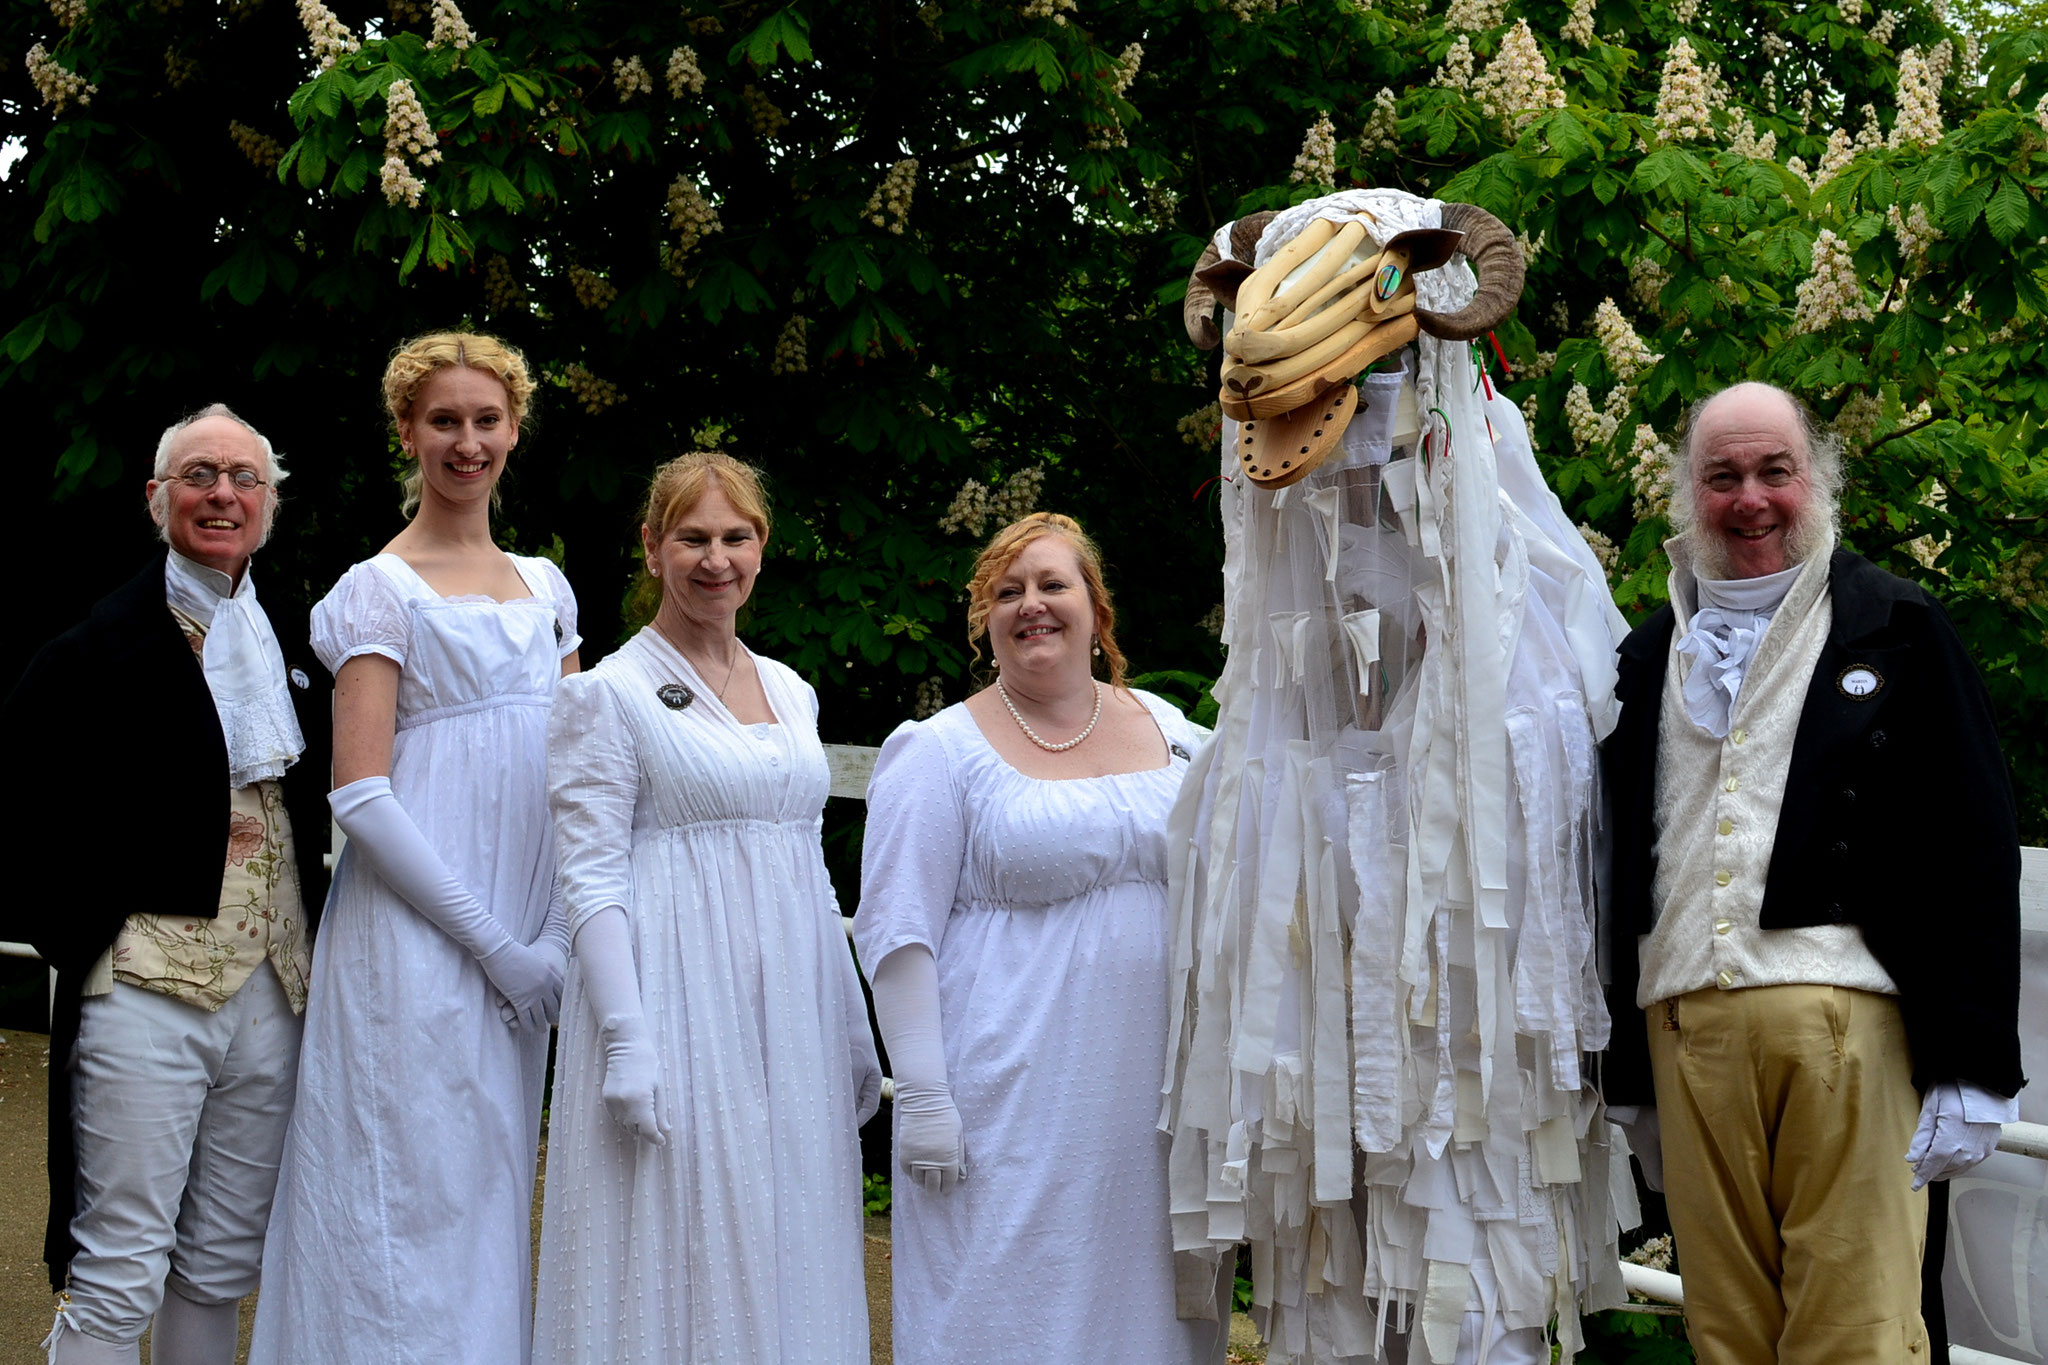 Jane Austen Dancers, Bradford on Avon Day of Dance, 18th May 2019 (Photo: Jane Austen Dancers)